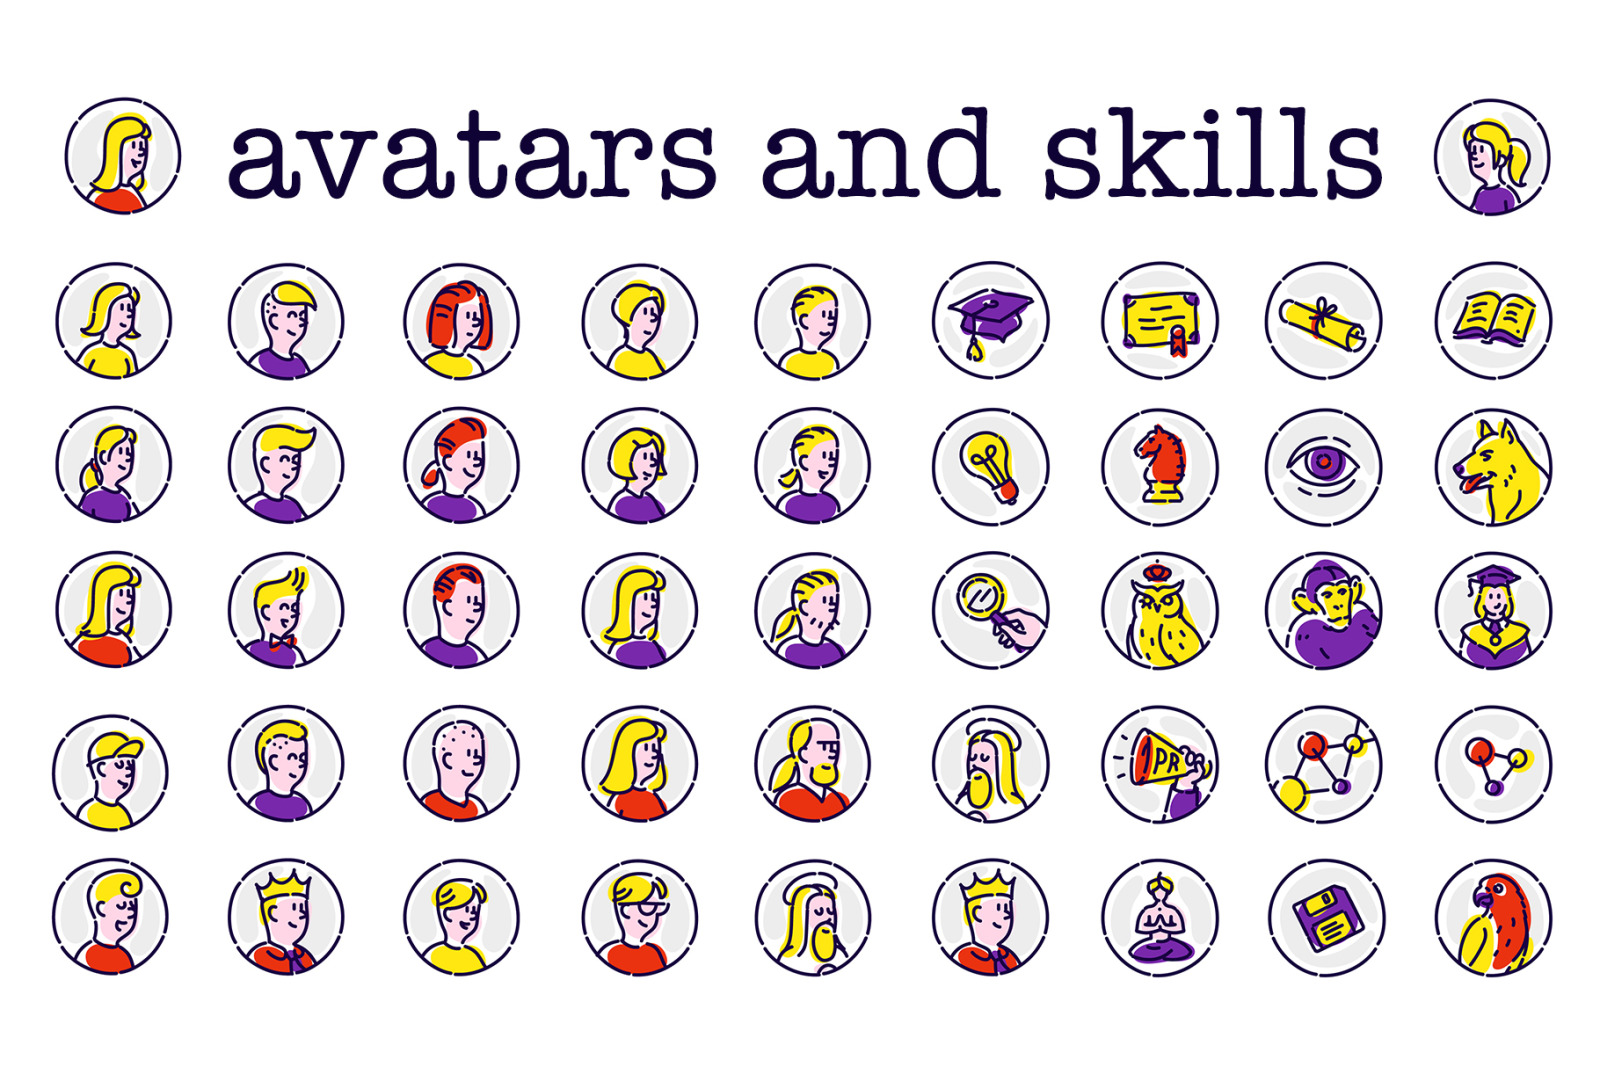 Illustrations of IT developers. Icons and avatars.